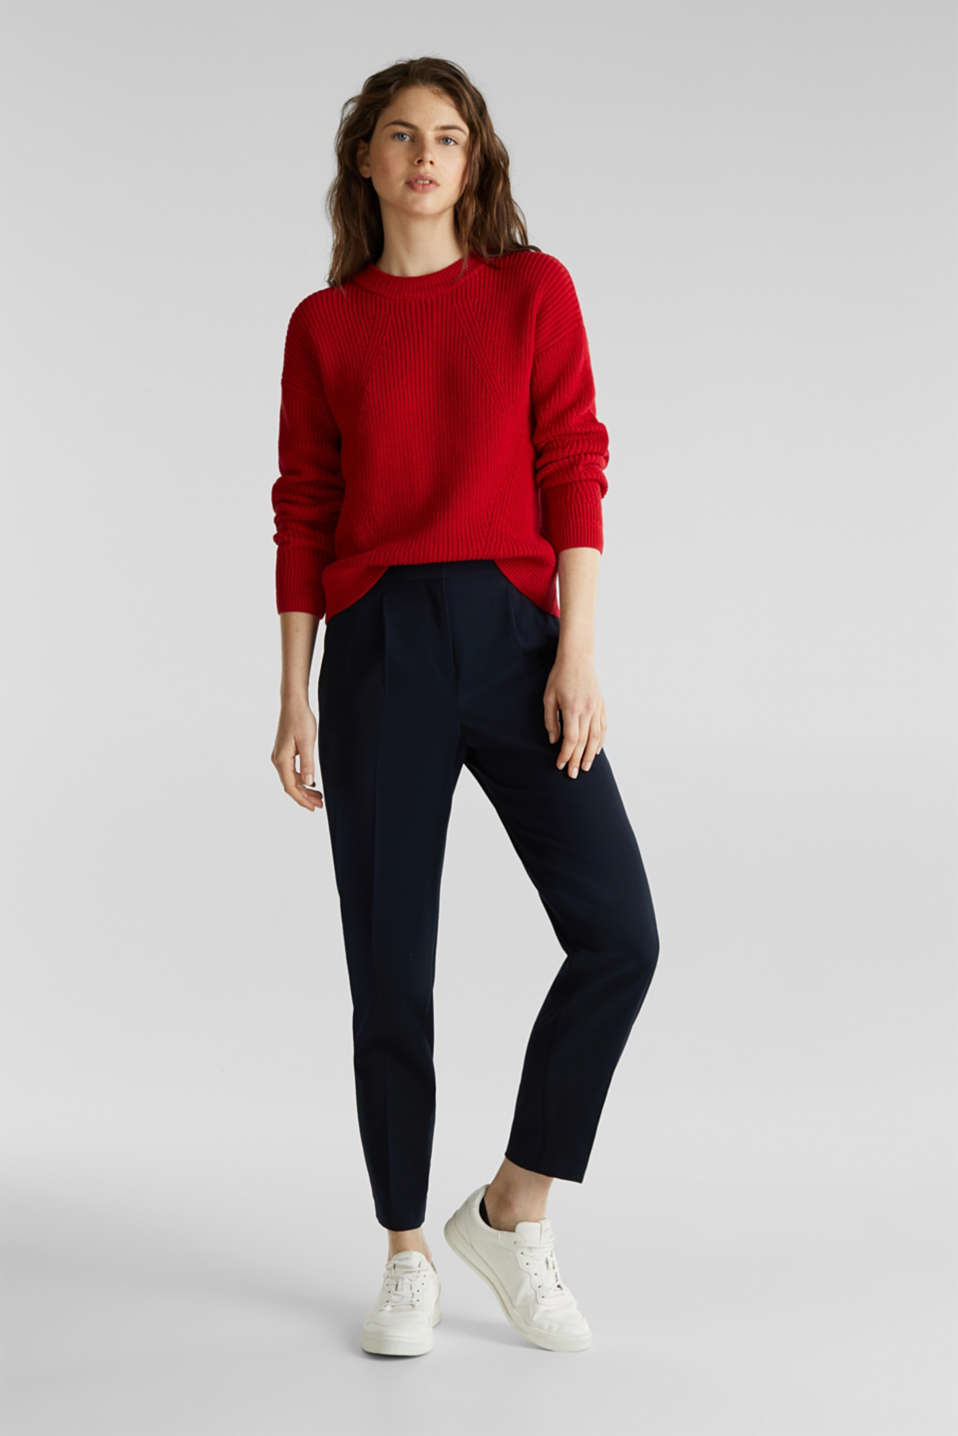 Jumper with textured details, 100% cotton, DARK RED, detail image number 1